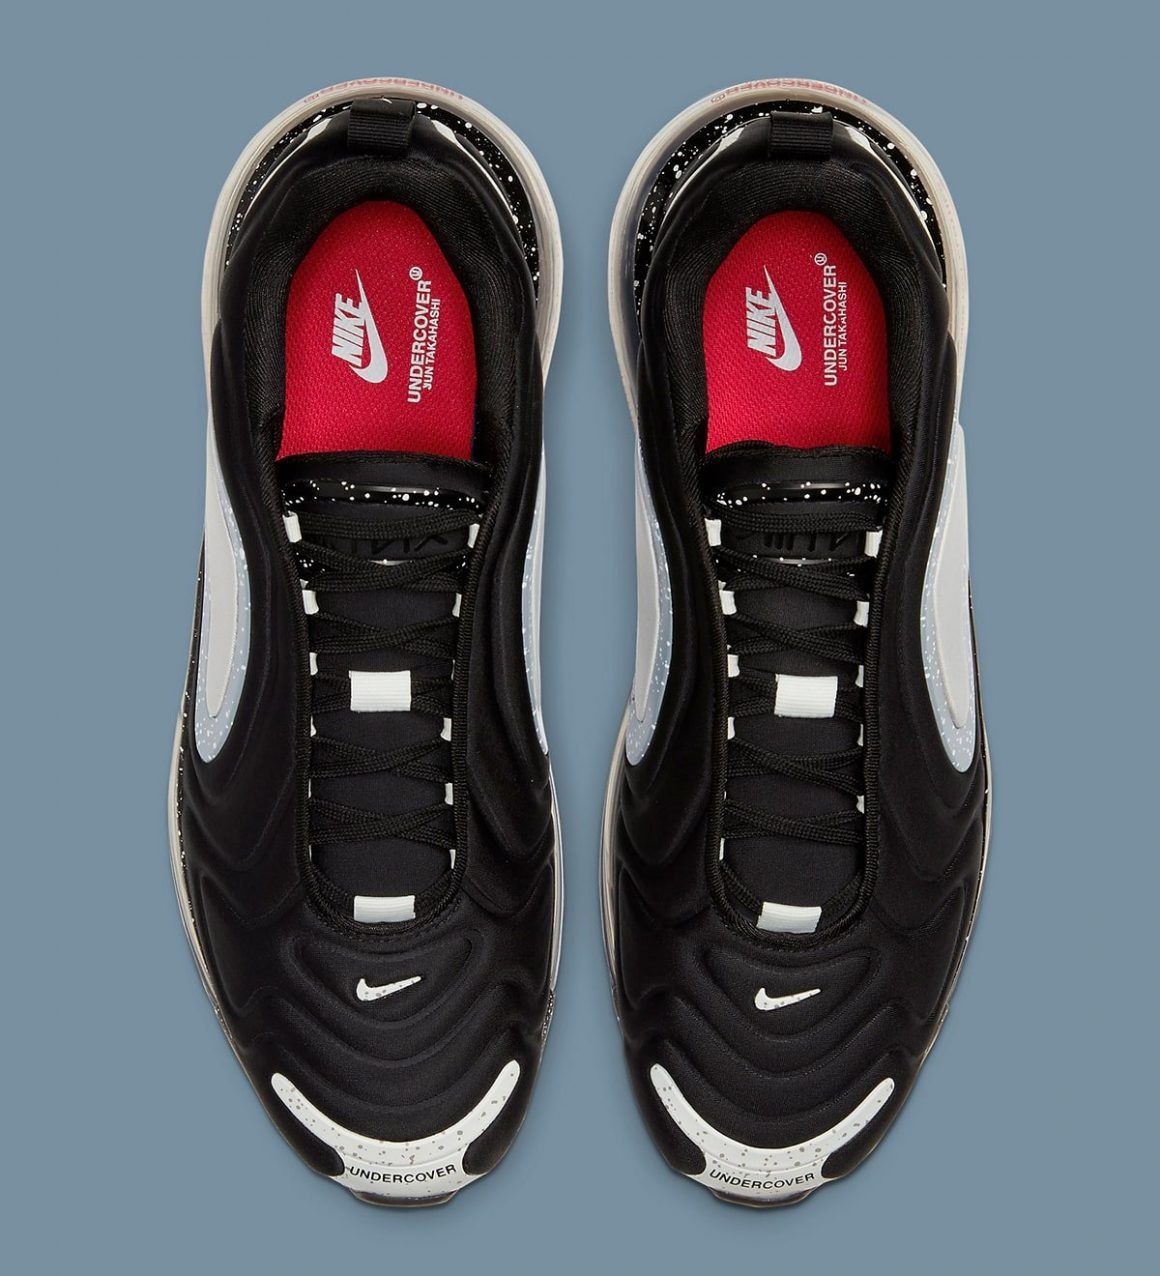 Undercover x Nike Air Max 720 ''Black/University Red''